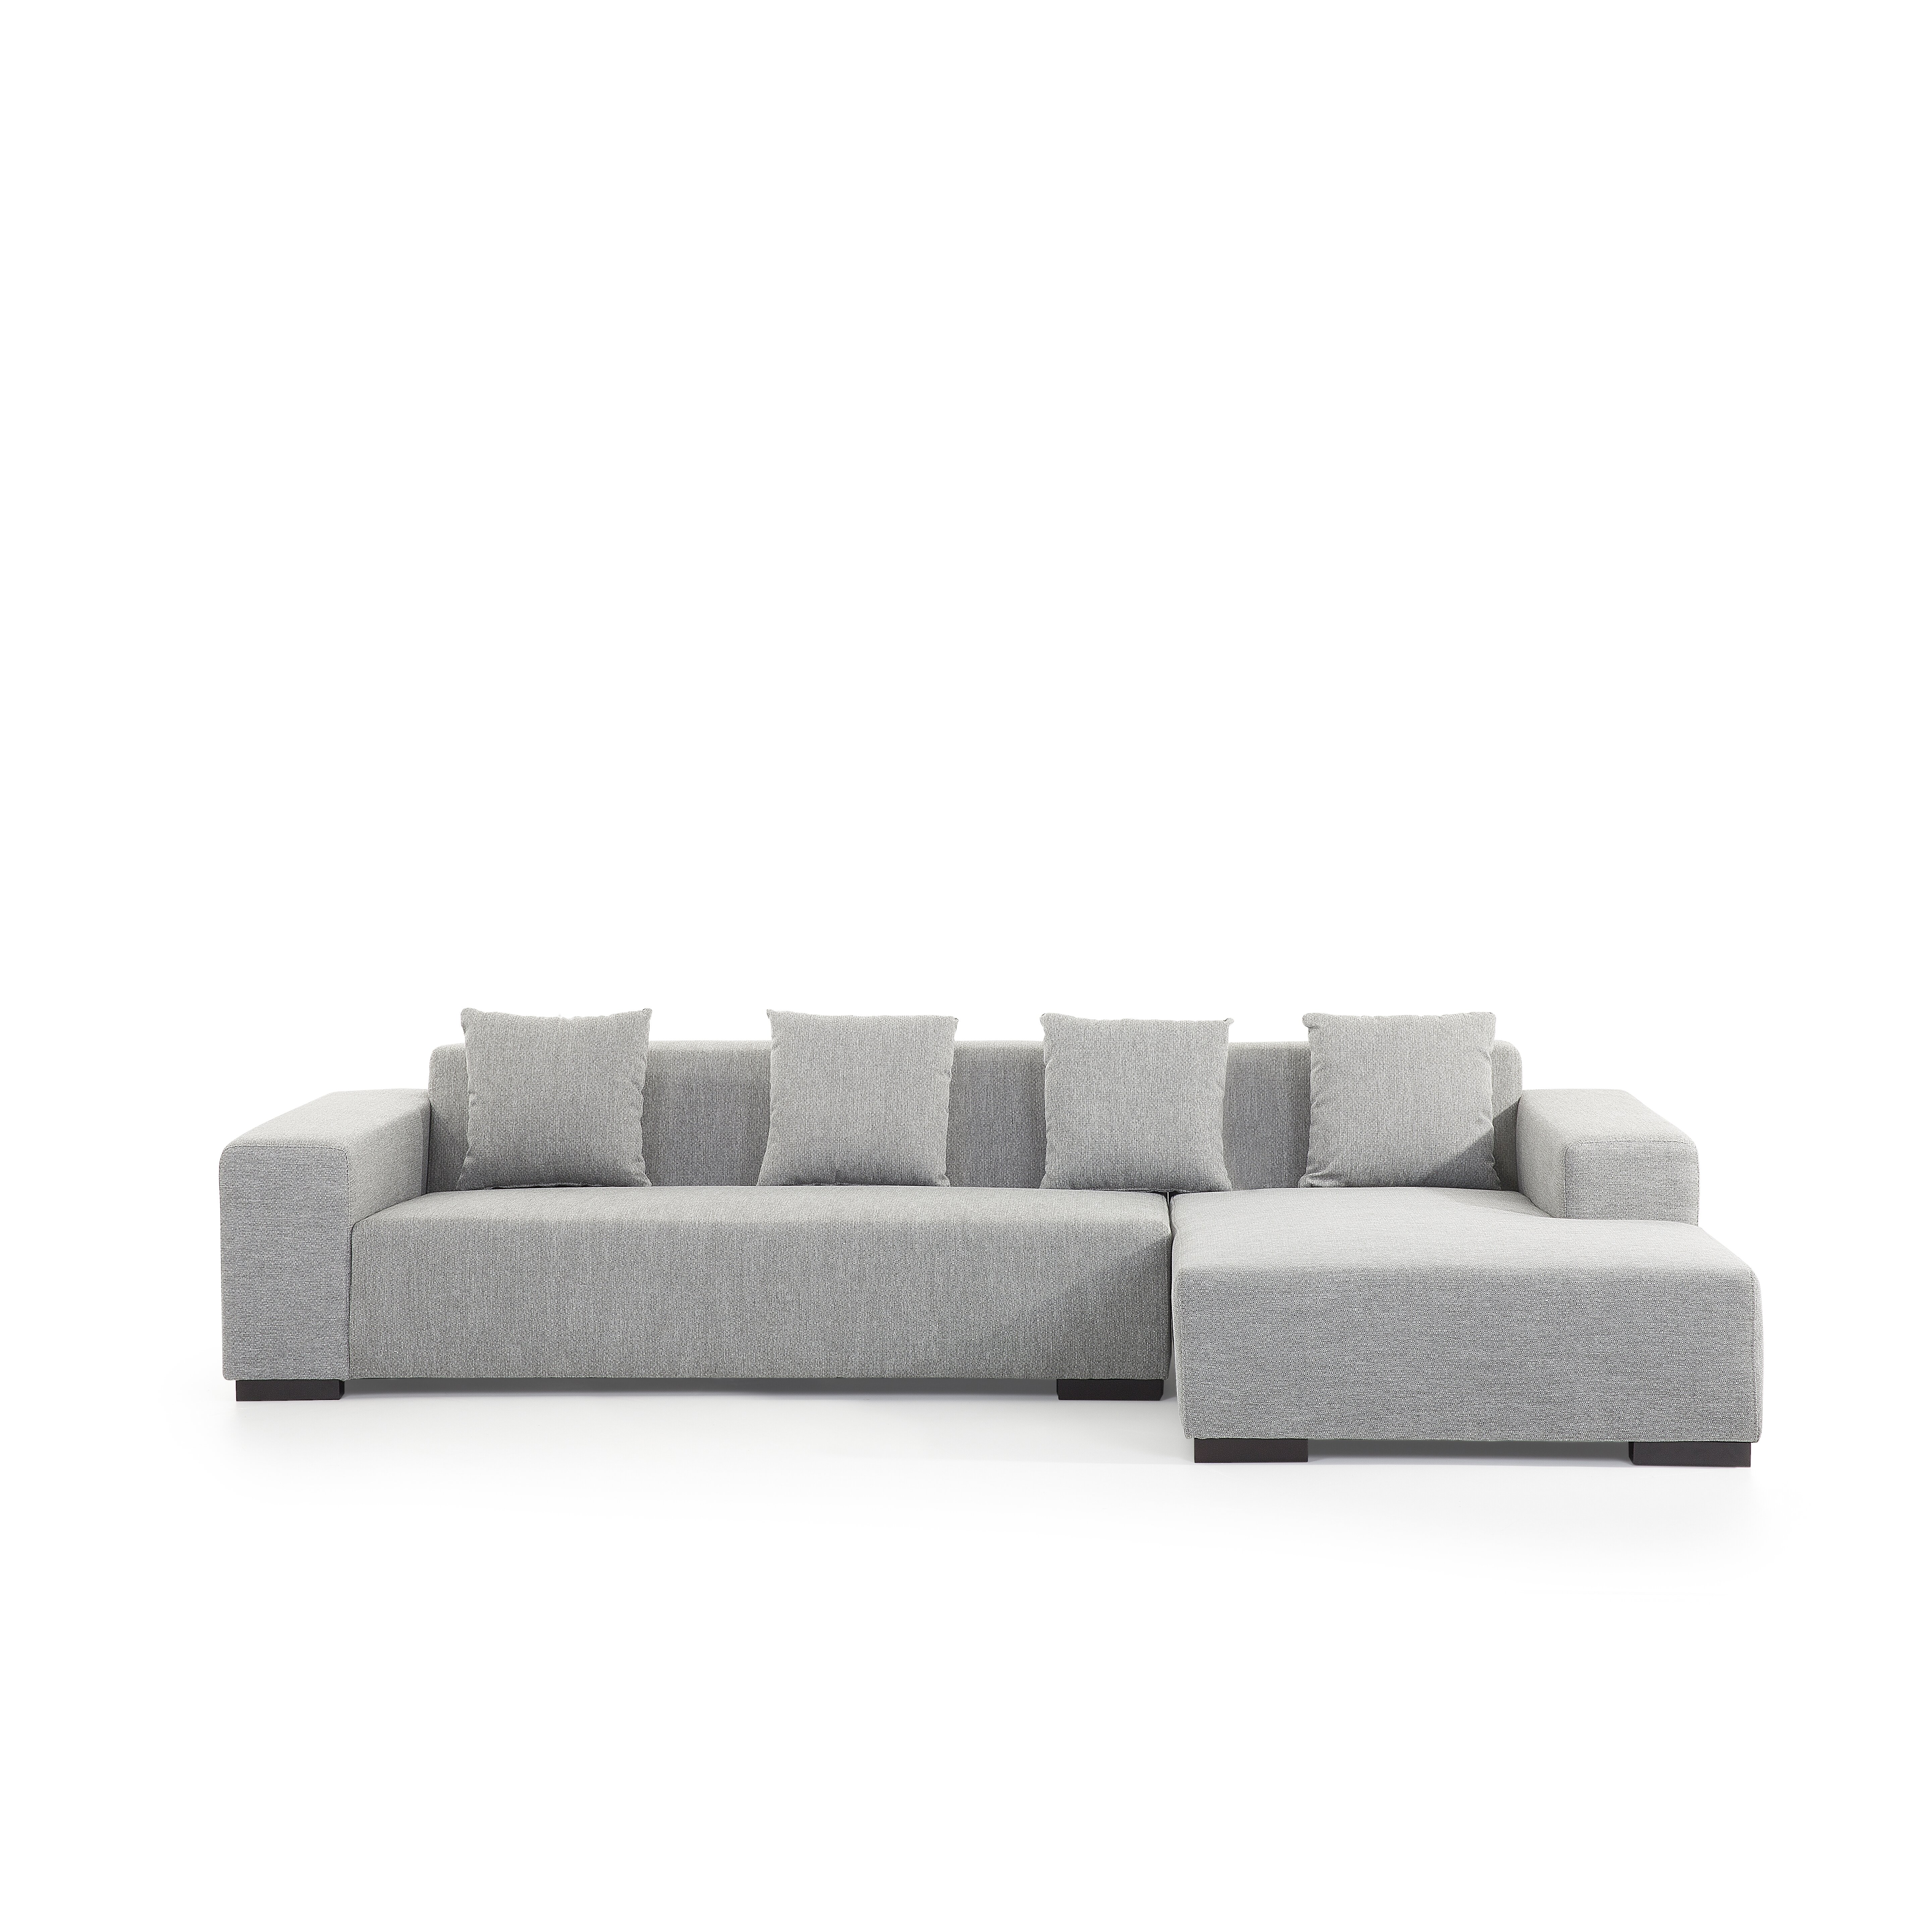 High quality leather sectional sofas - High Quality Leather Sectional Sofas 20